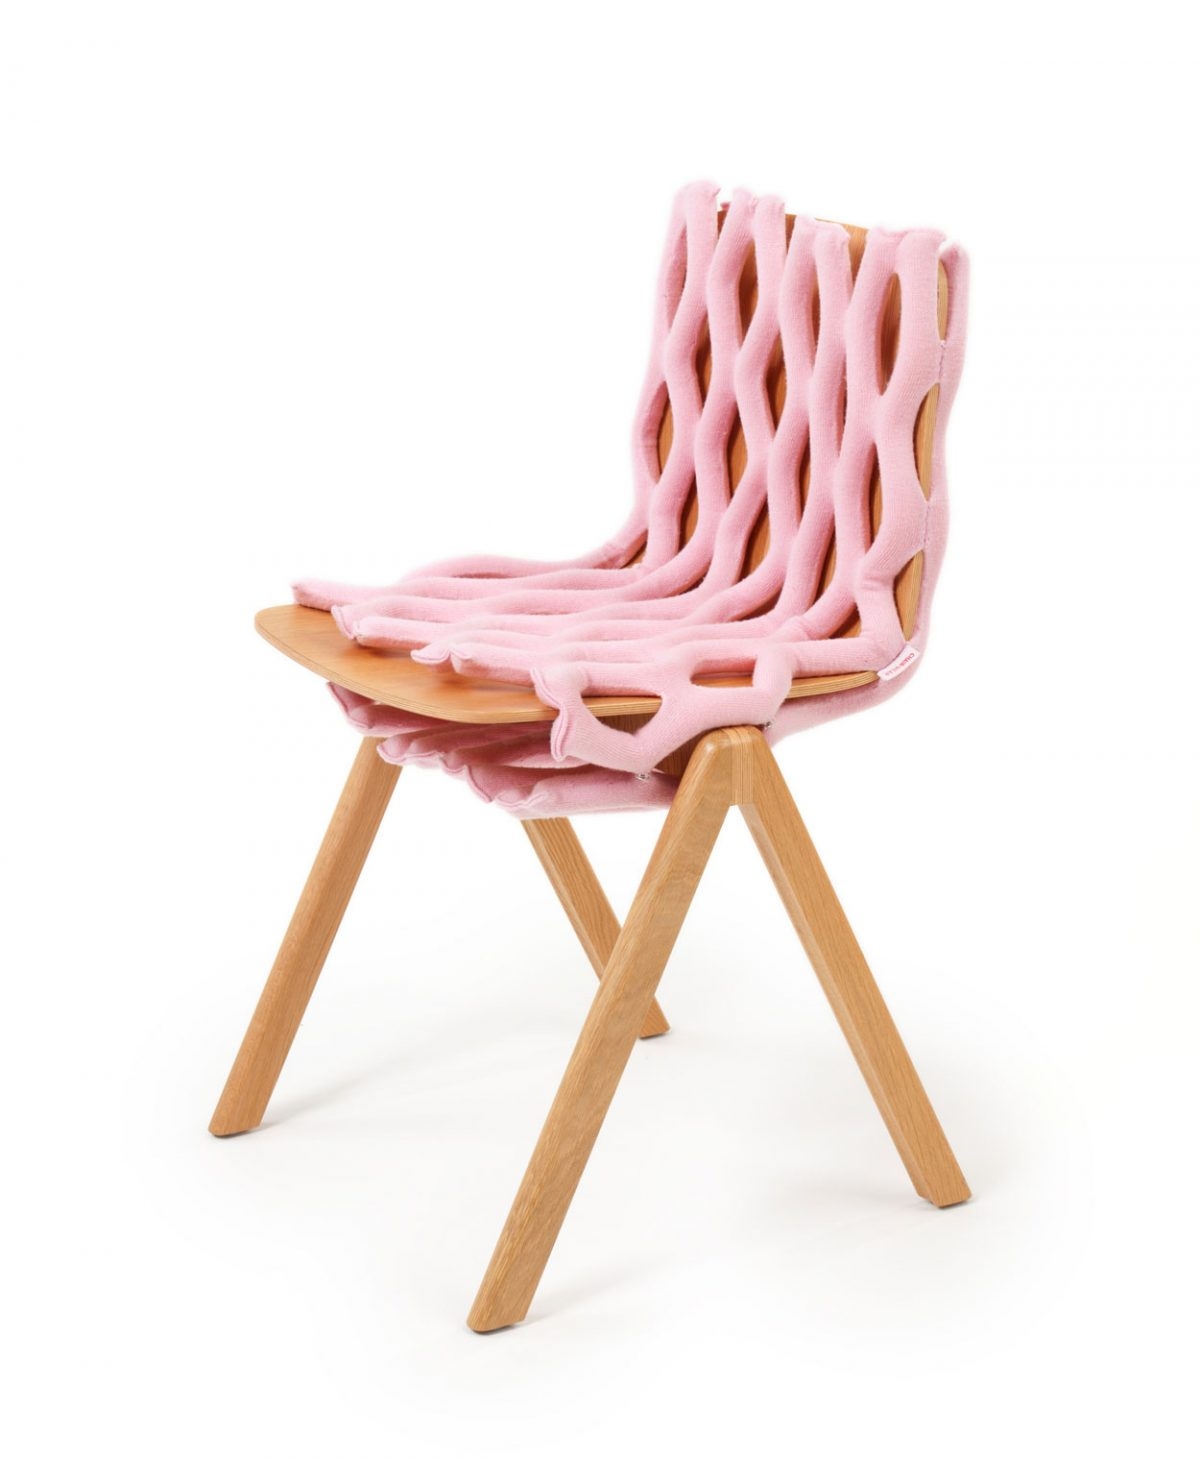 chair-wear-knit-net-roze-zijkant